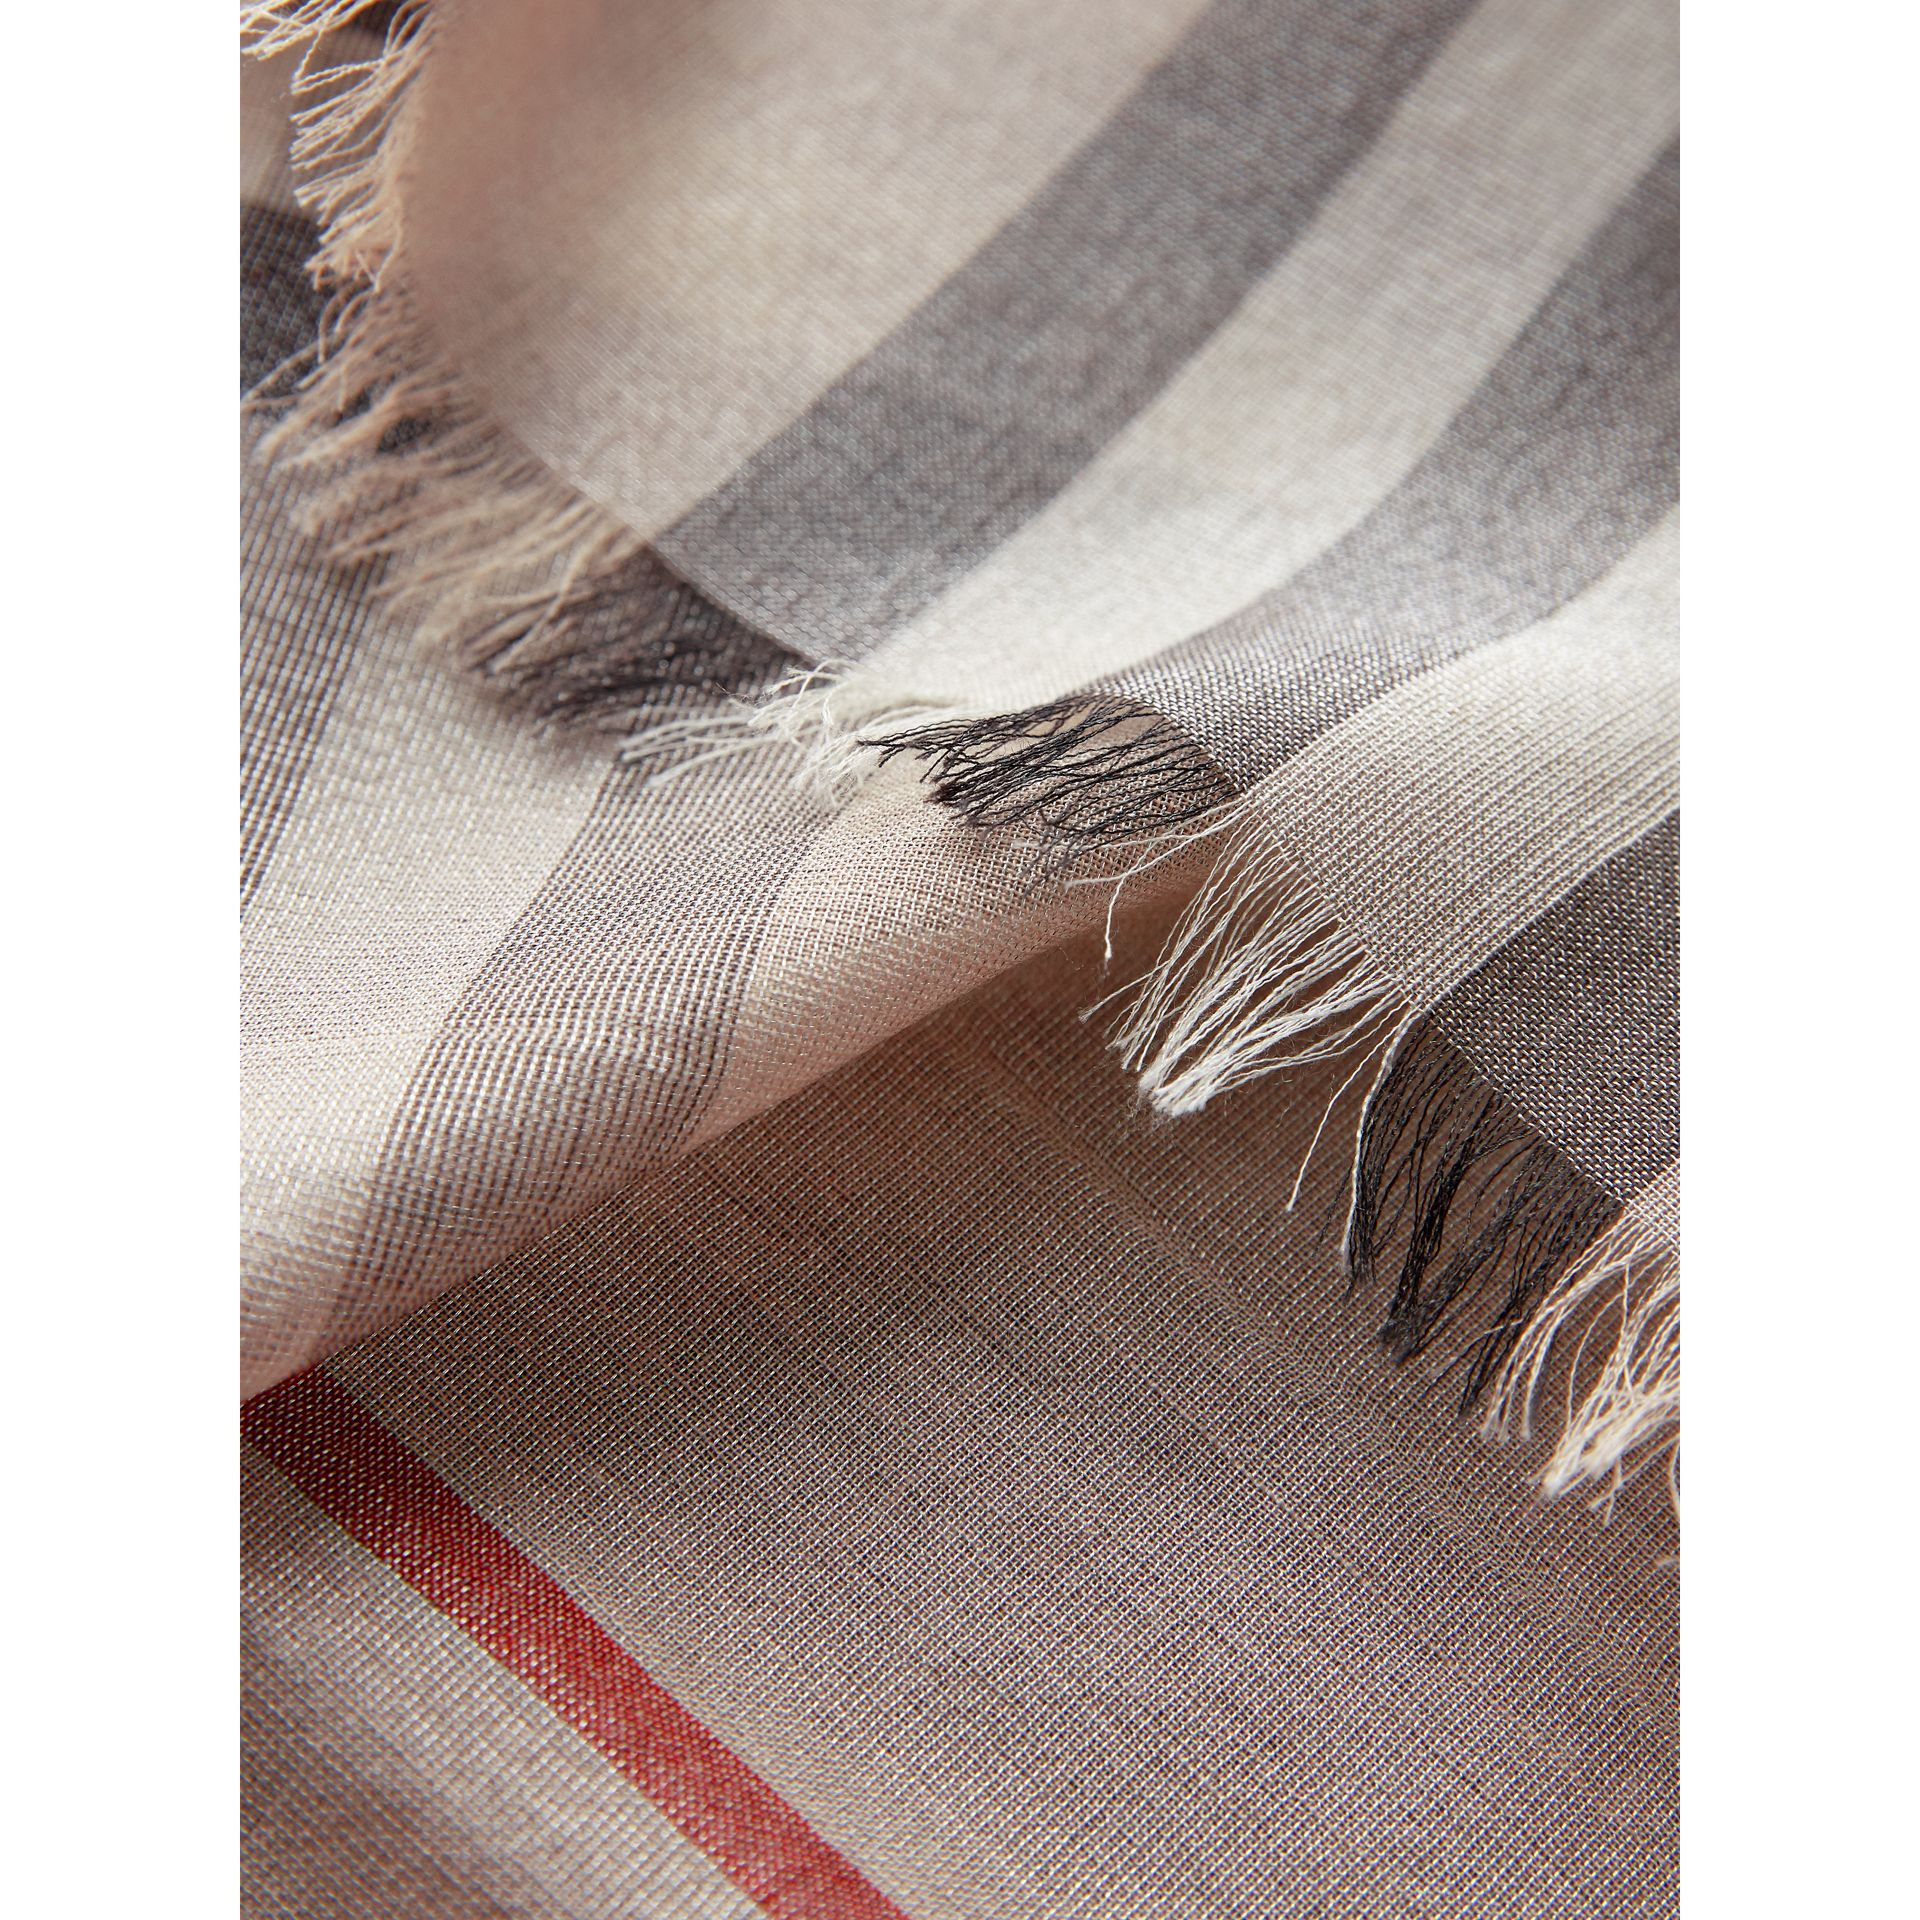 Metallic Check Silk and Wool Scarf in Stone/ Silver | Burberry - gallery image 1